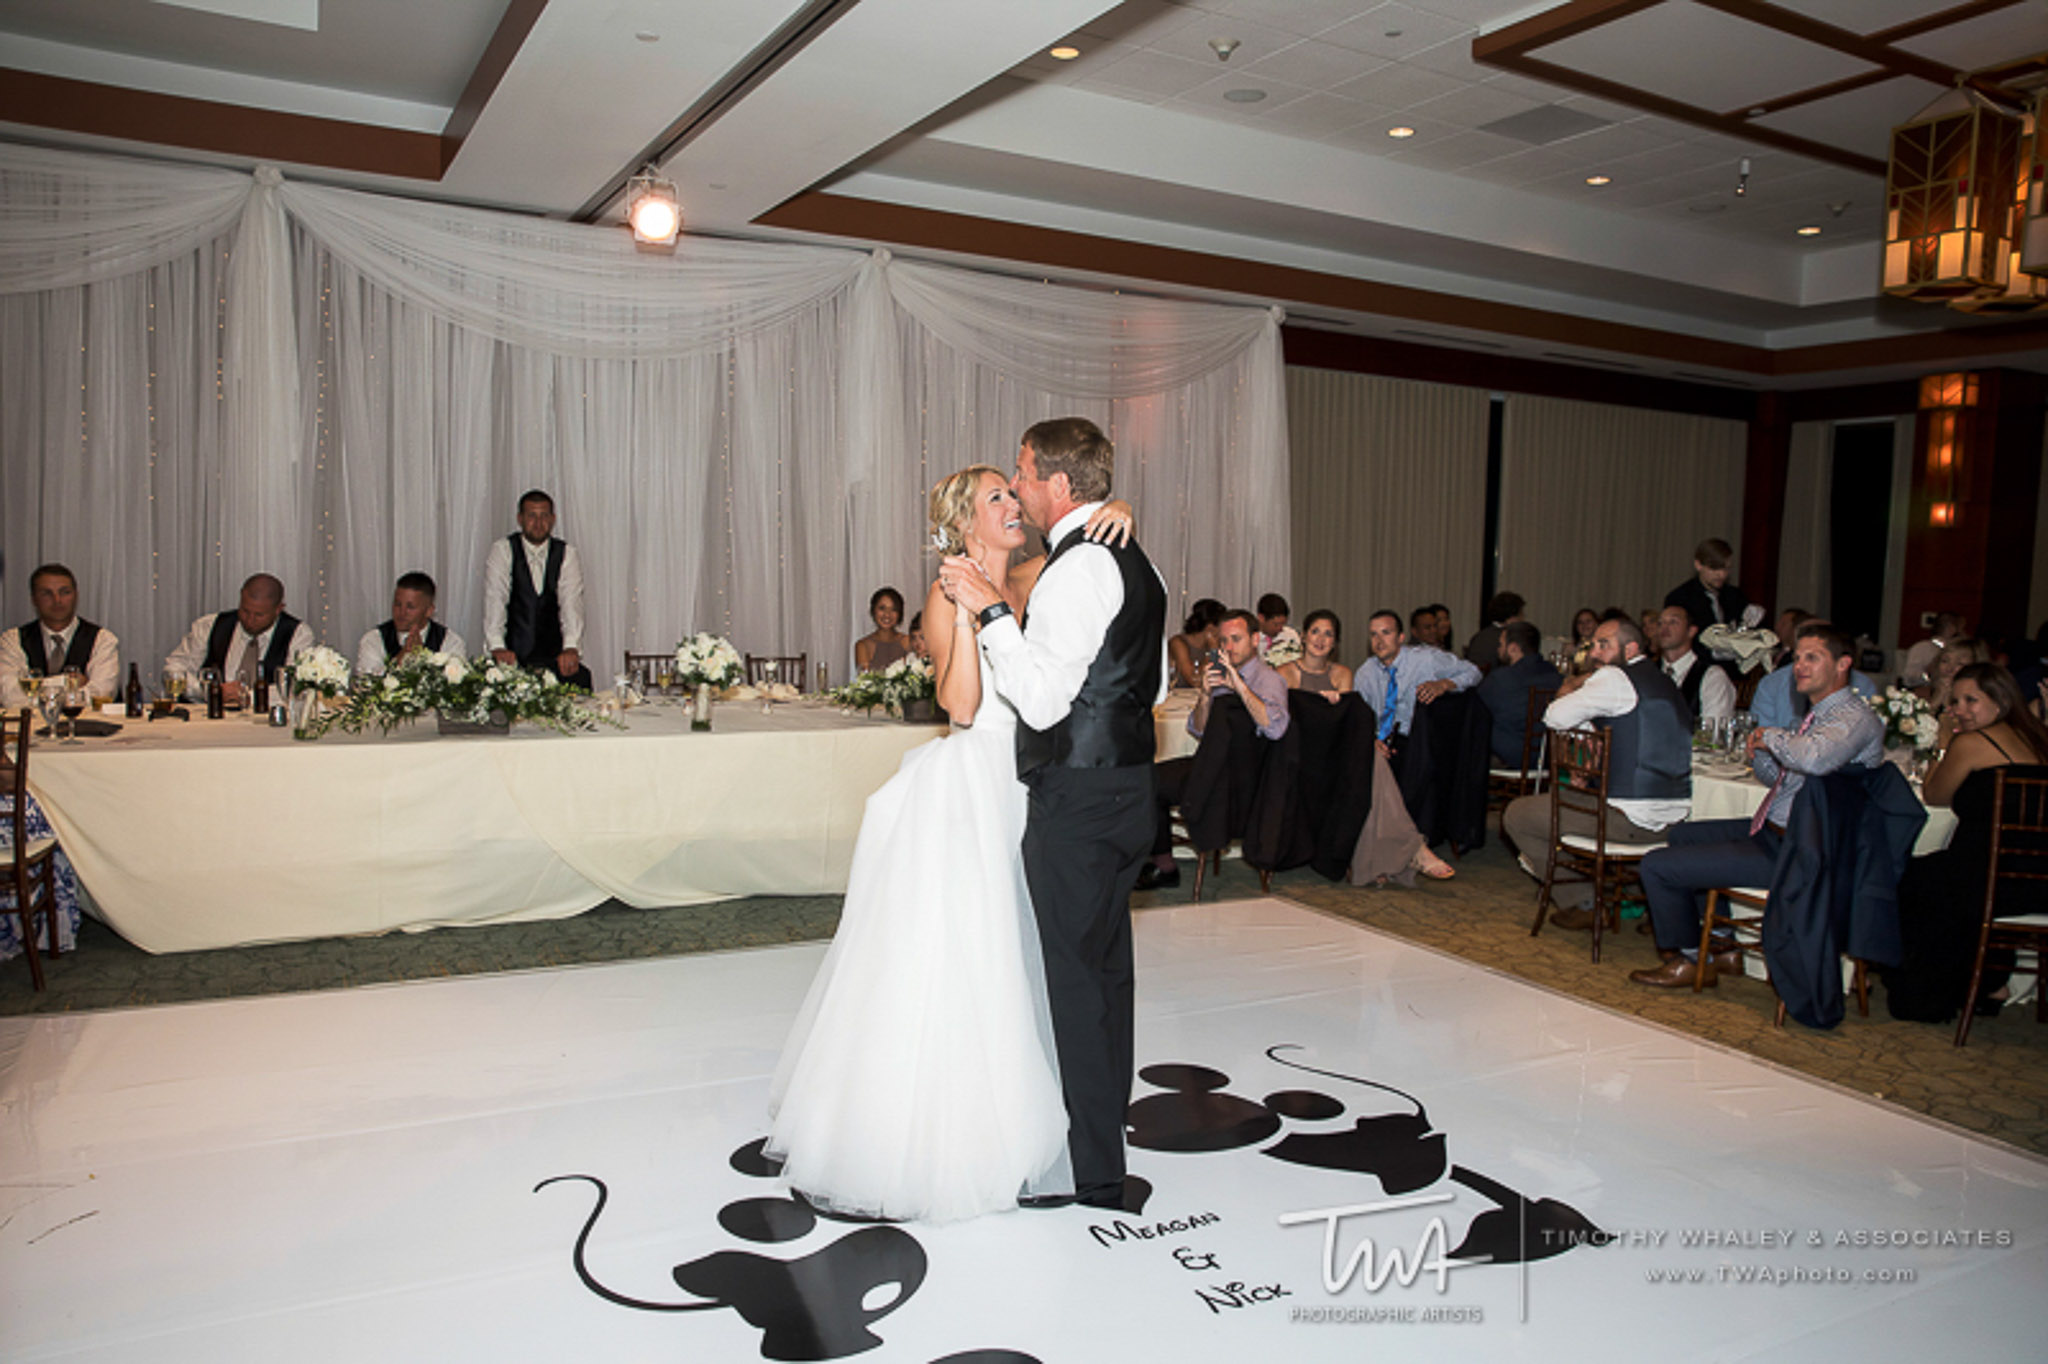 Elegant_Event_Lighting_Chicago_Eaglewood_Resort_Spa_Itasca_Wedding_Dance_White_Dance_Floor_Disney